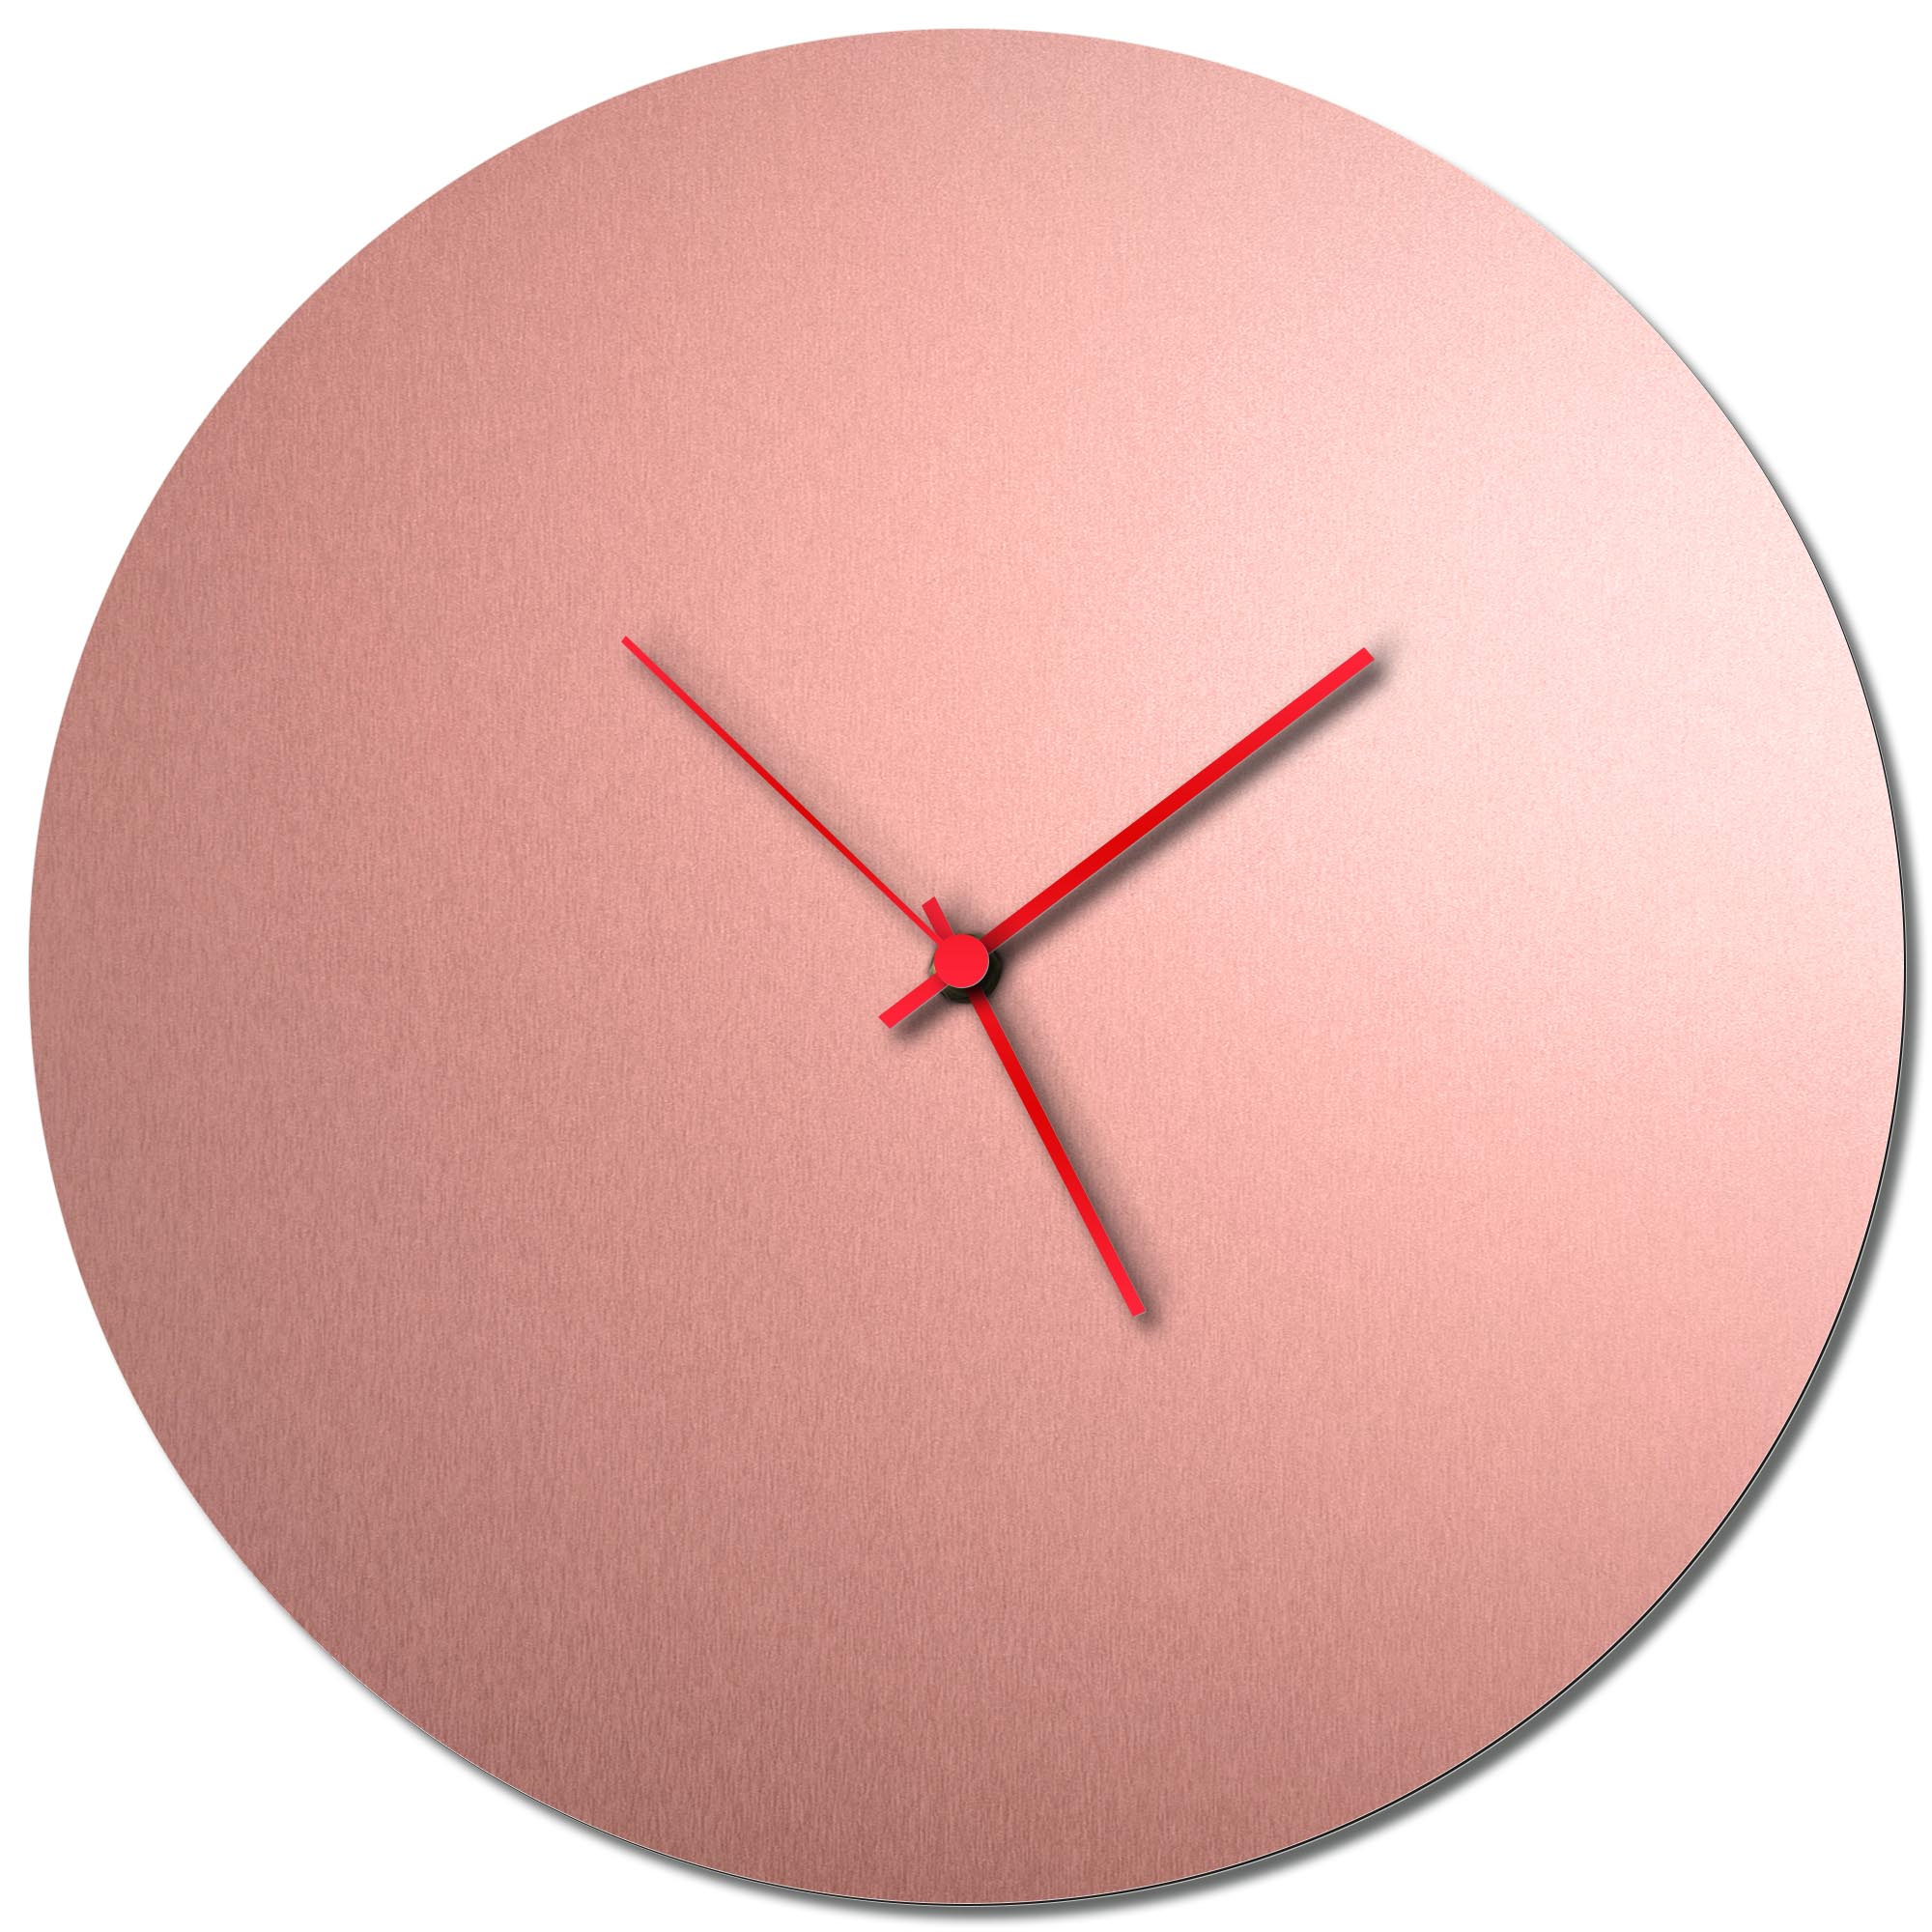 Adam Schwoeppe 'Coppersmith Circle Clock Red' Midcentury Modern Style Wall Clock